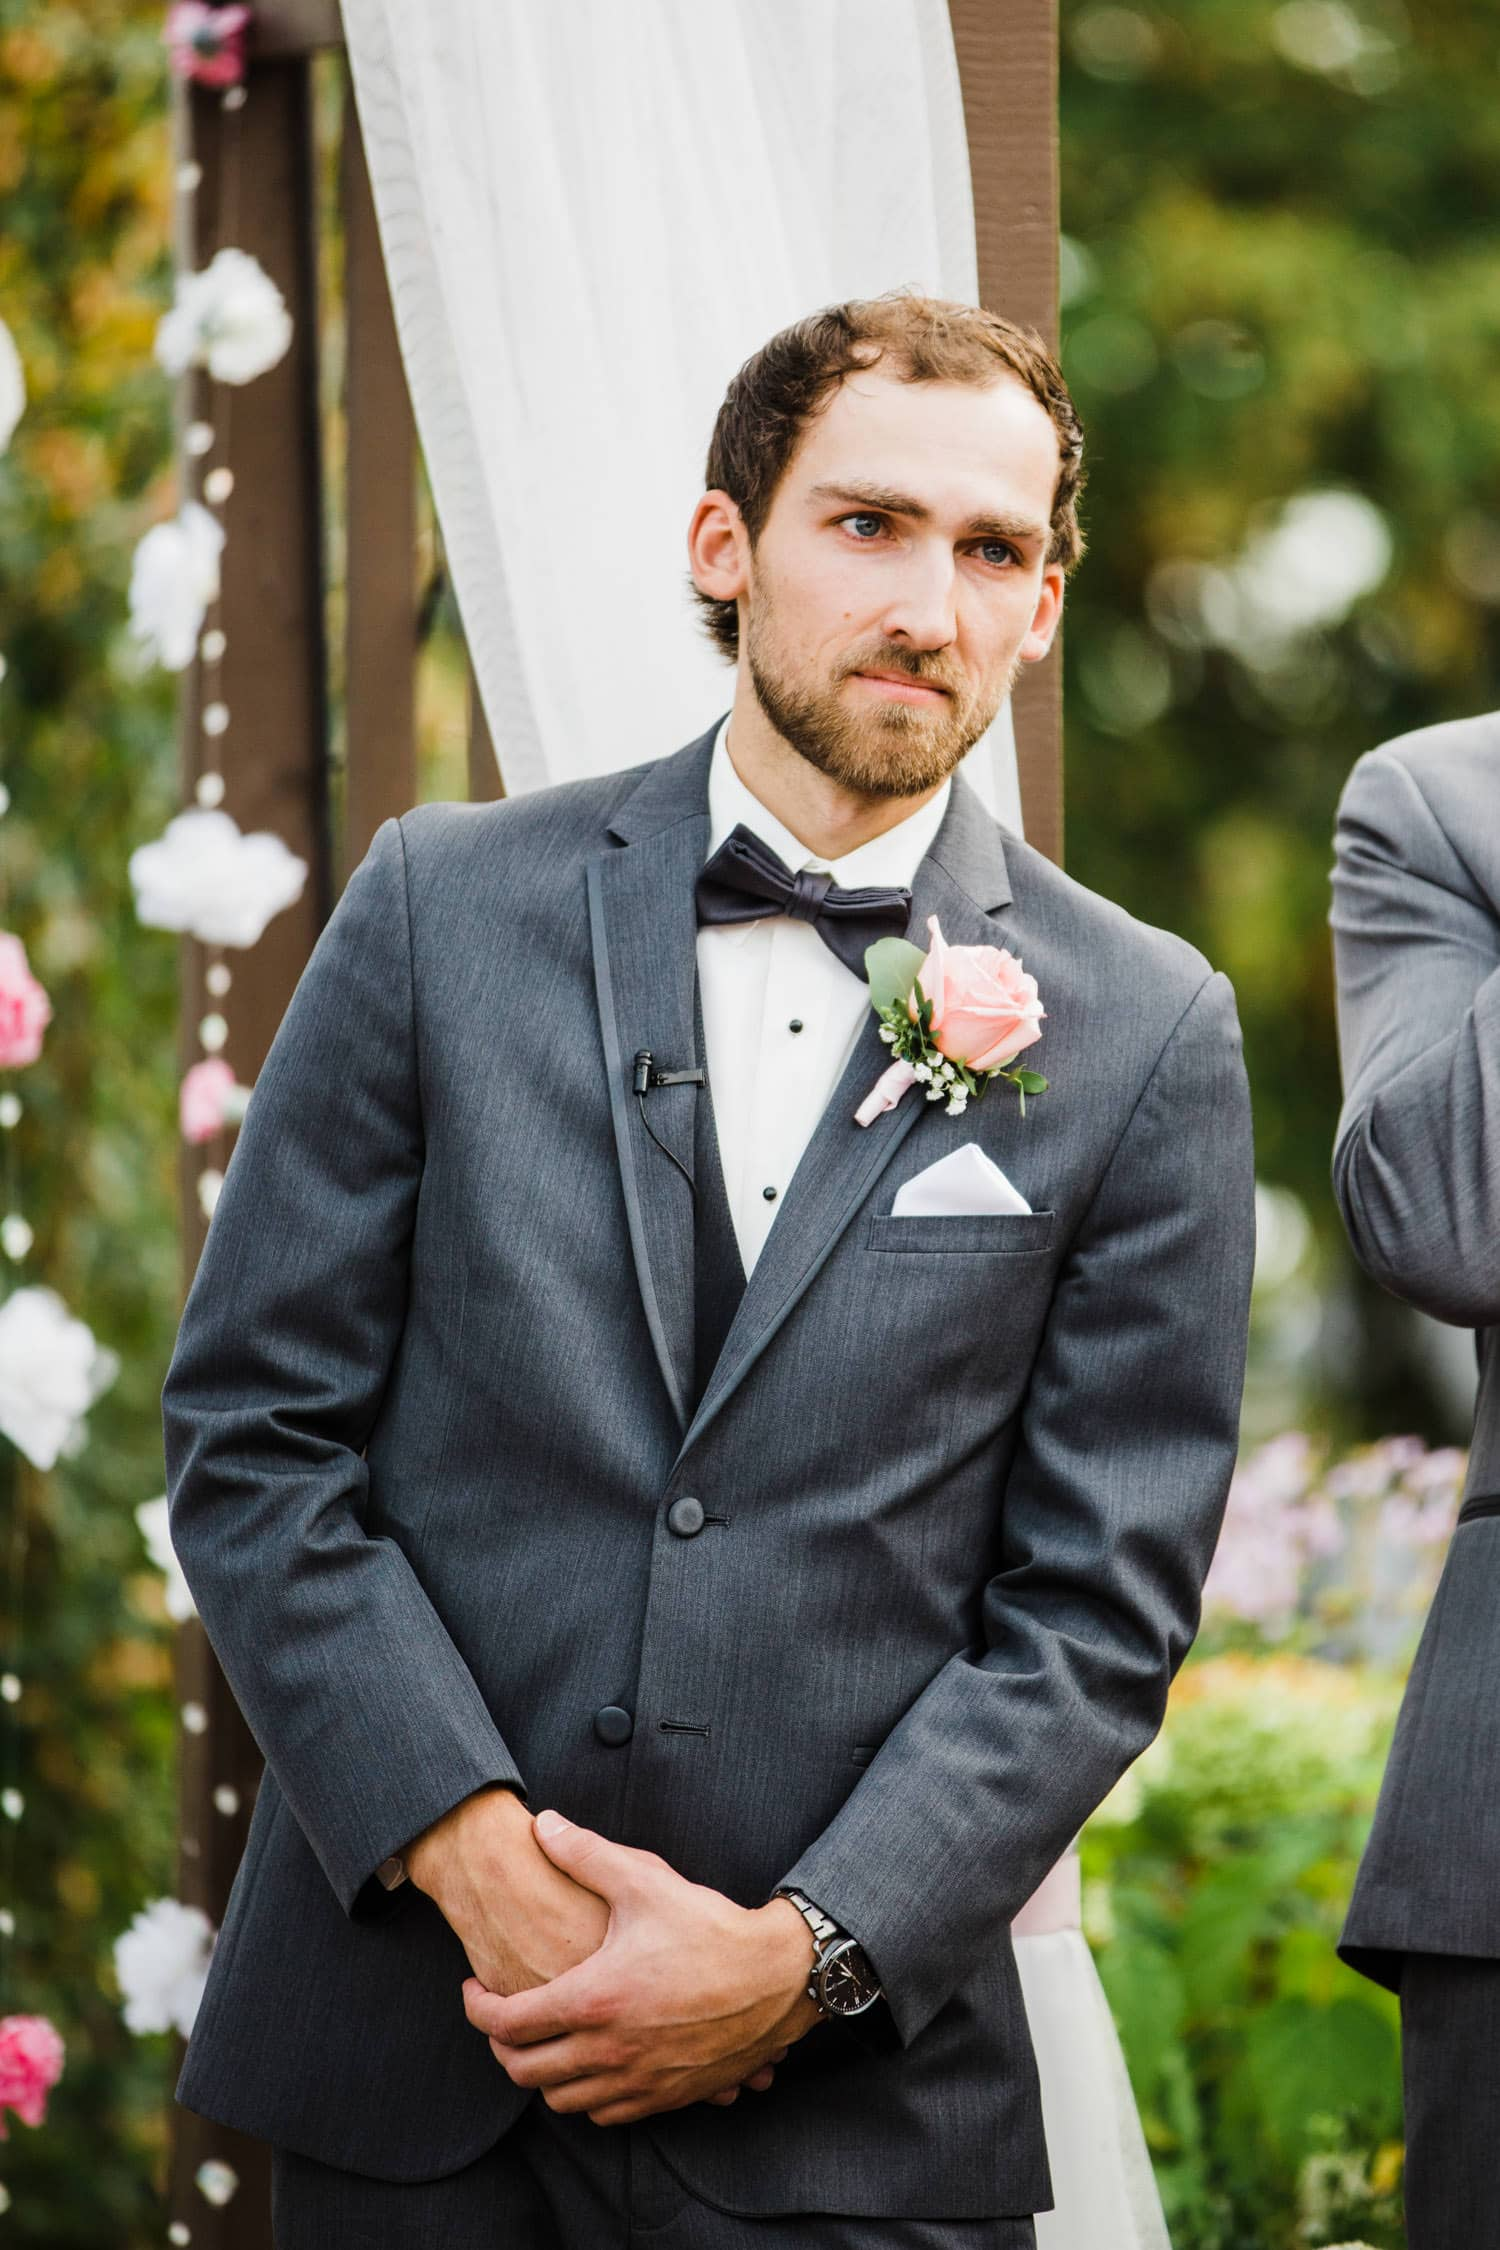 groom cries when he sees his bride for the first time - strathmere summer wedding